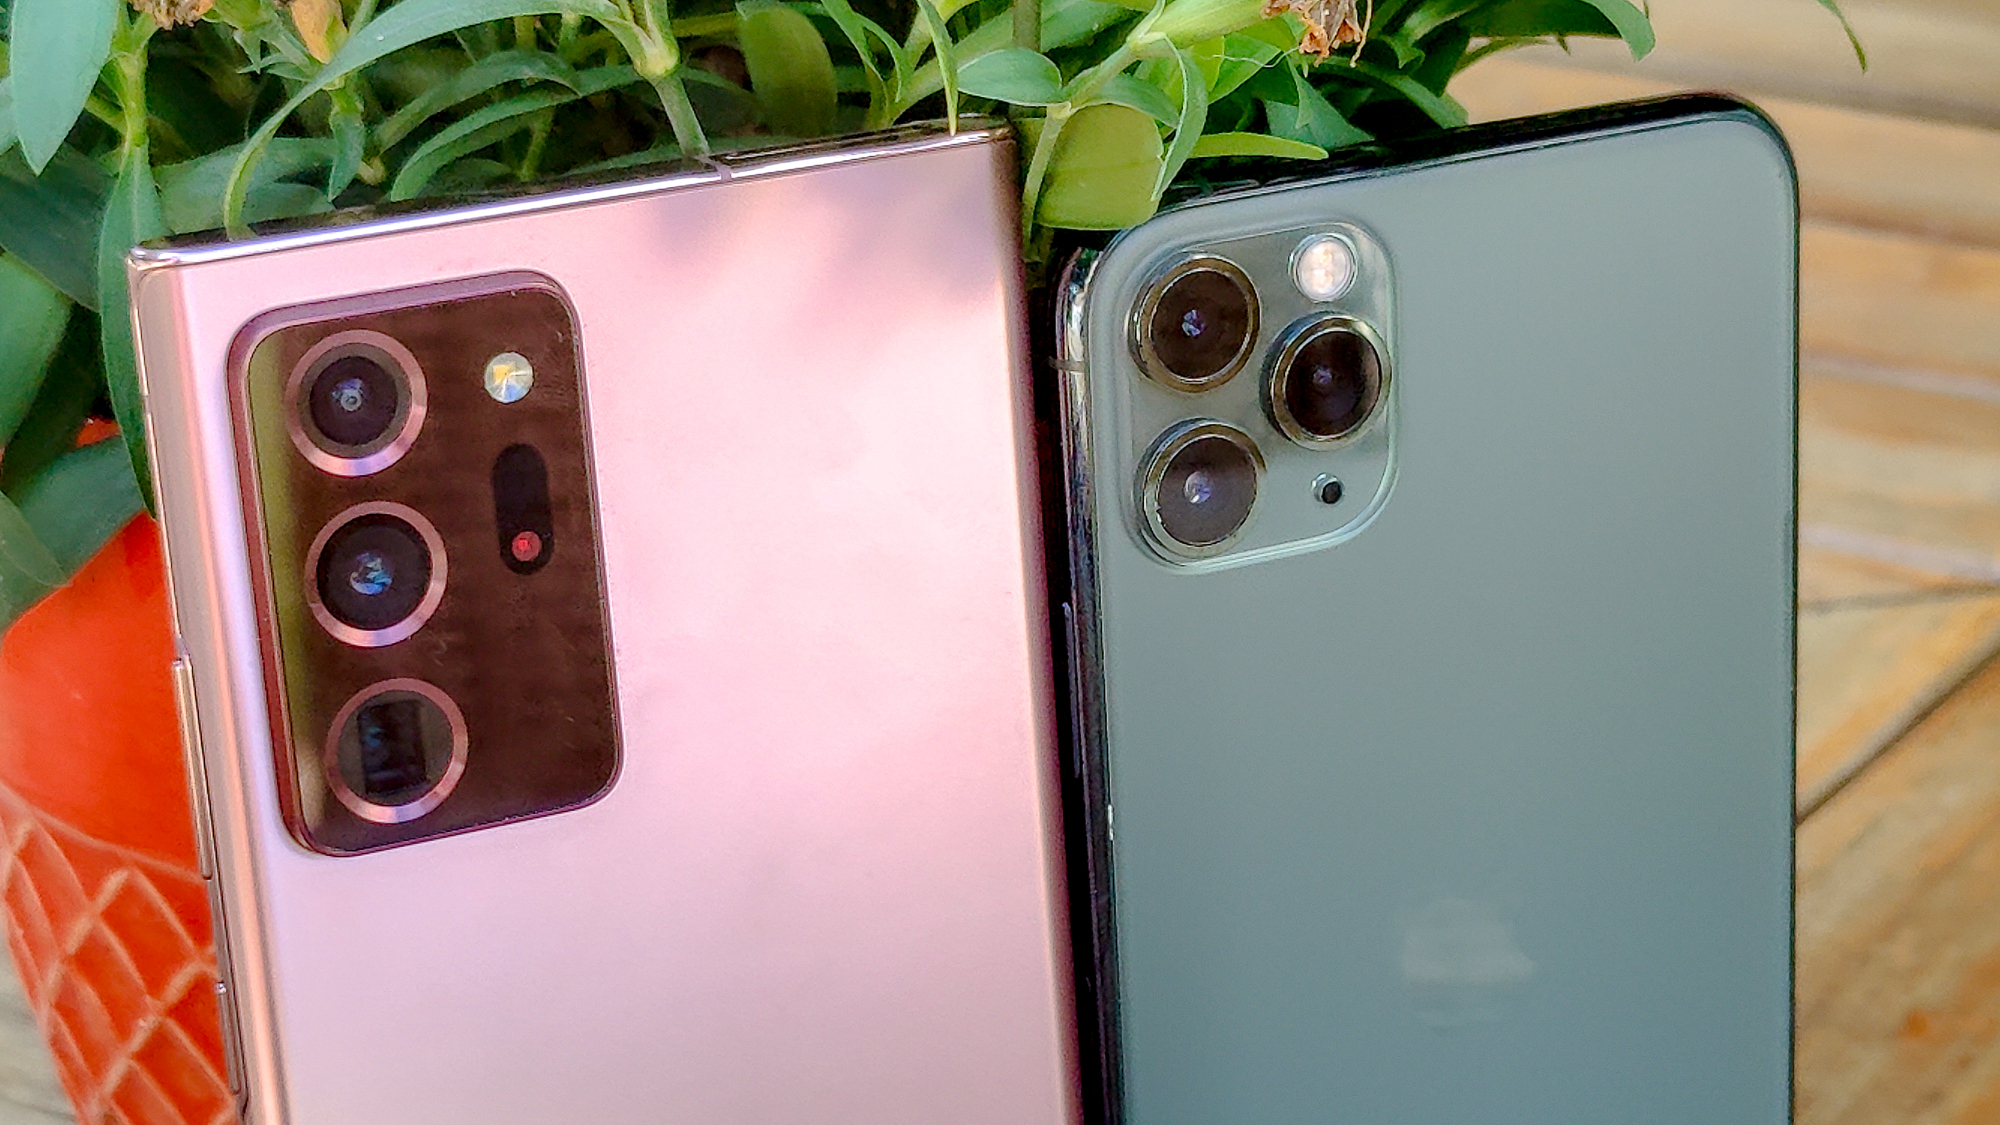 Galaxy Note 20 Ultra Vs Iphone 11 Pro Max Camera Shootout Tom S Guide